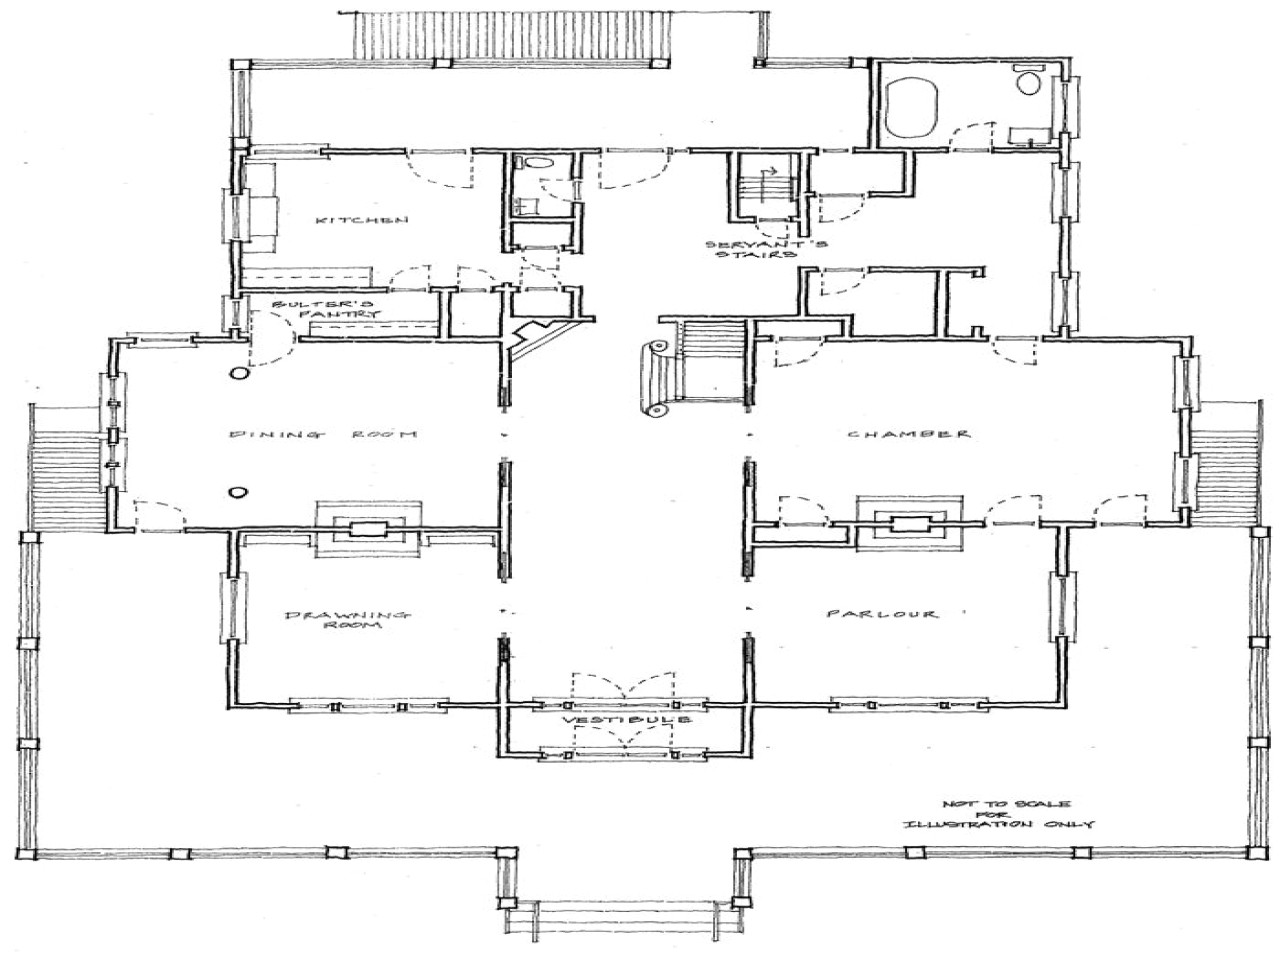 2c05b969391f3ffb two story luxury home floor plans historic home floor plans